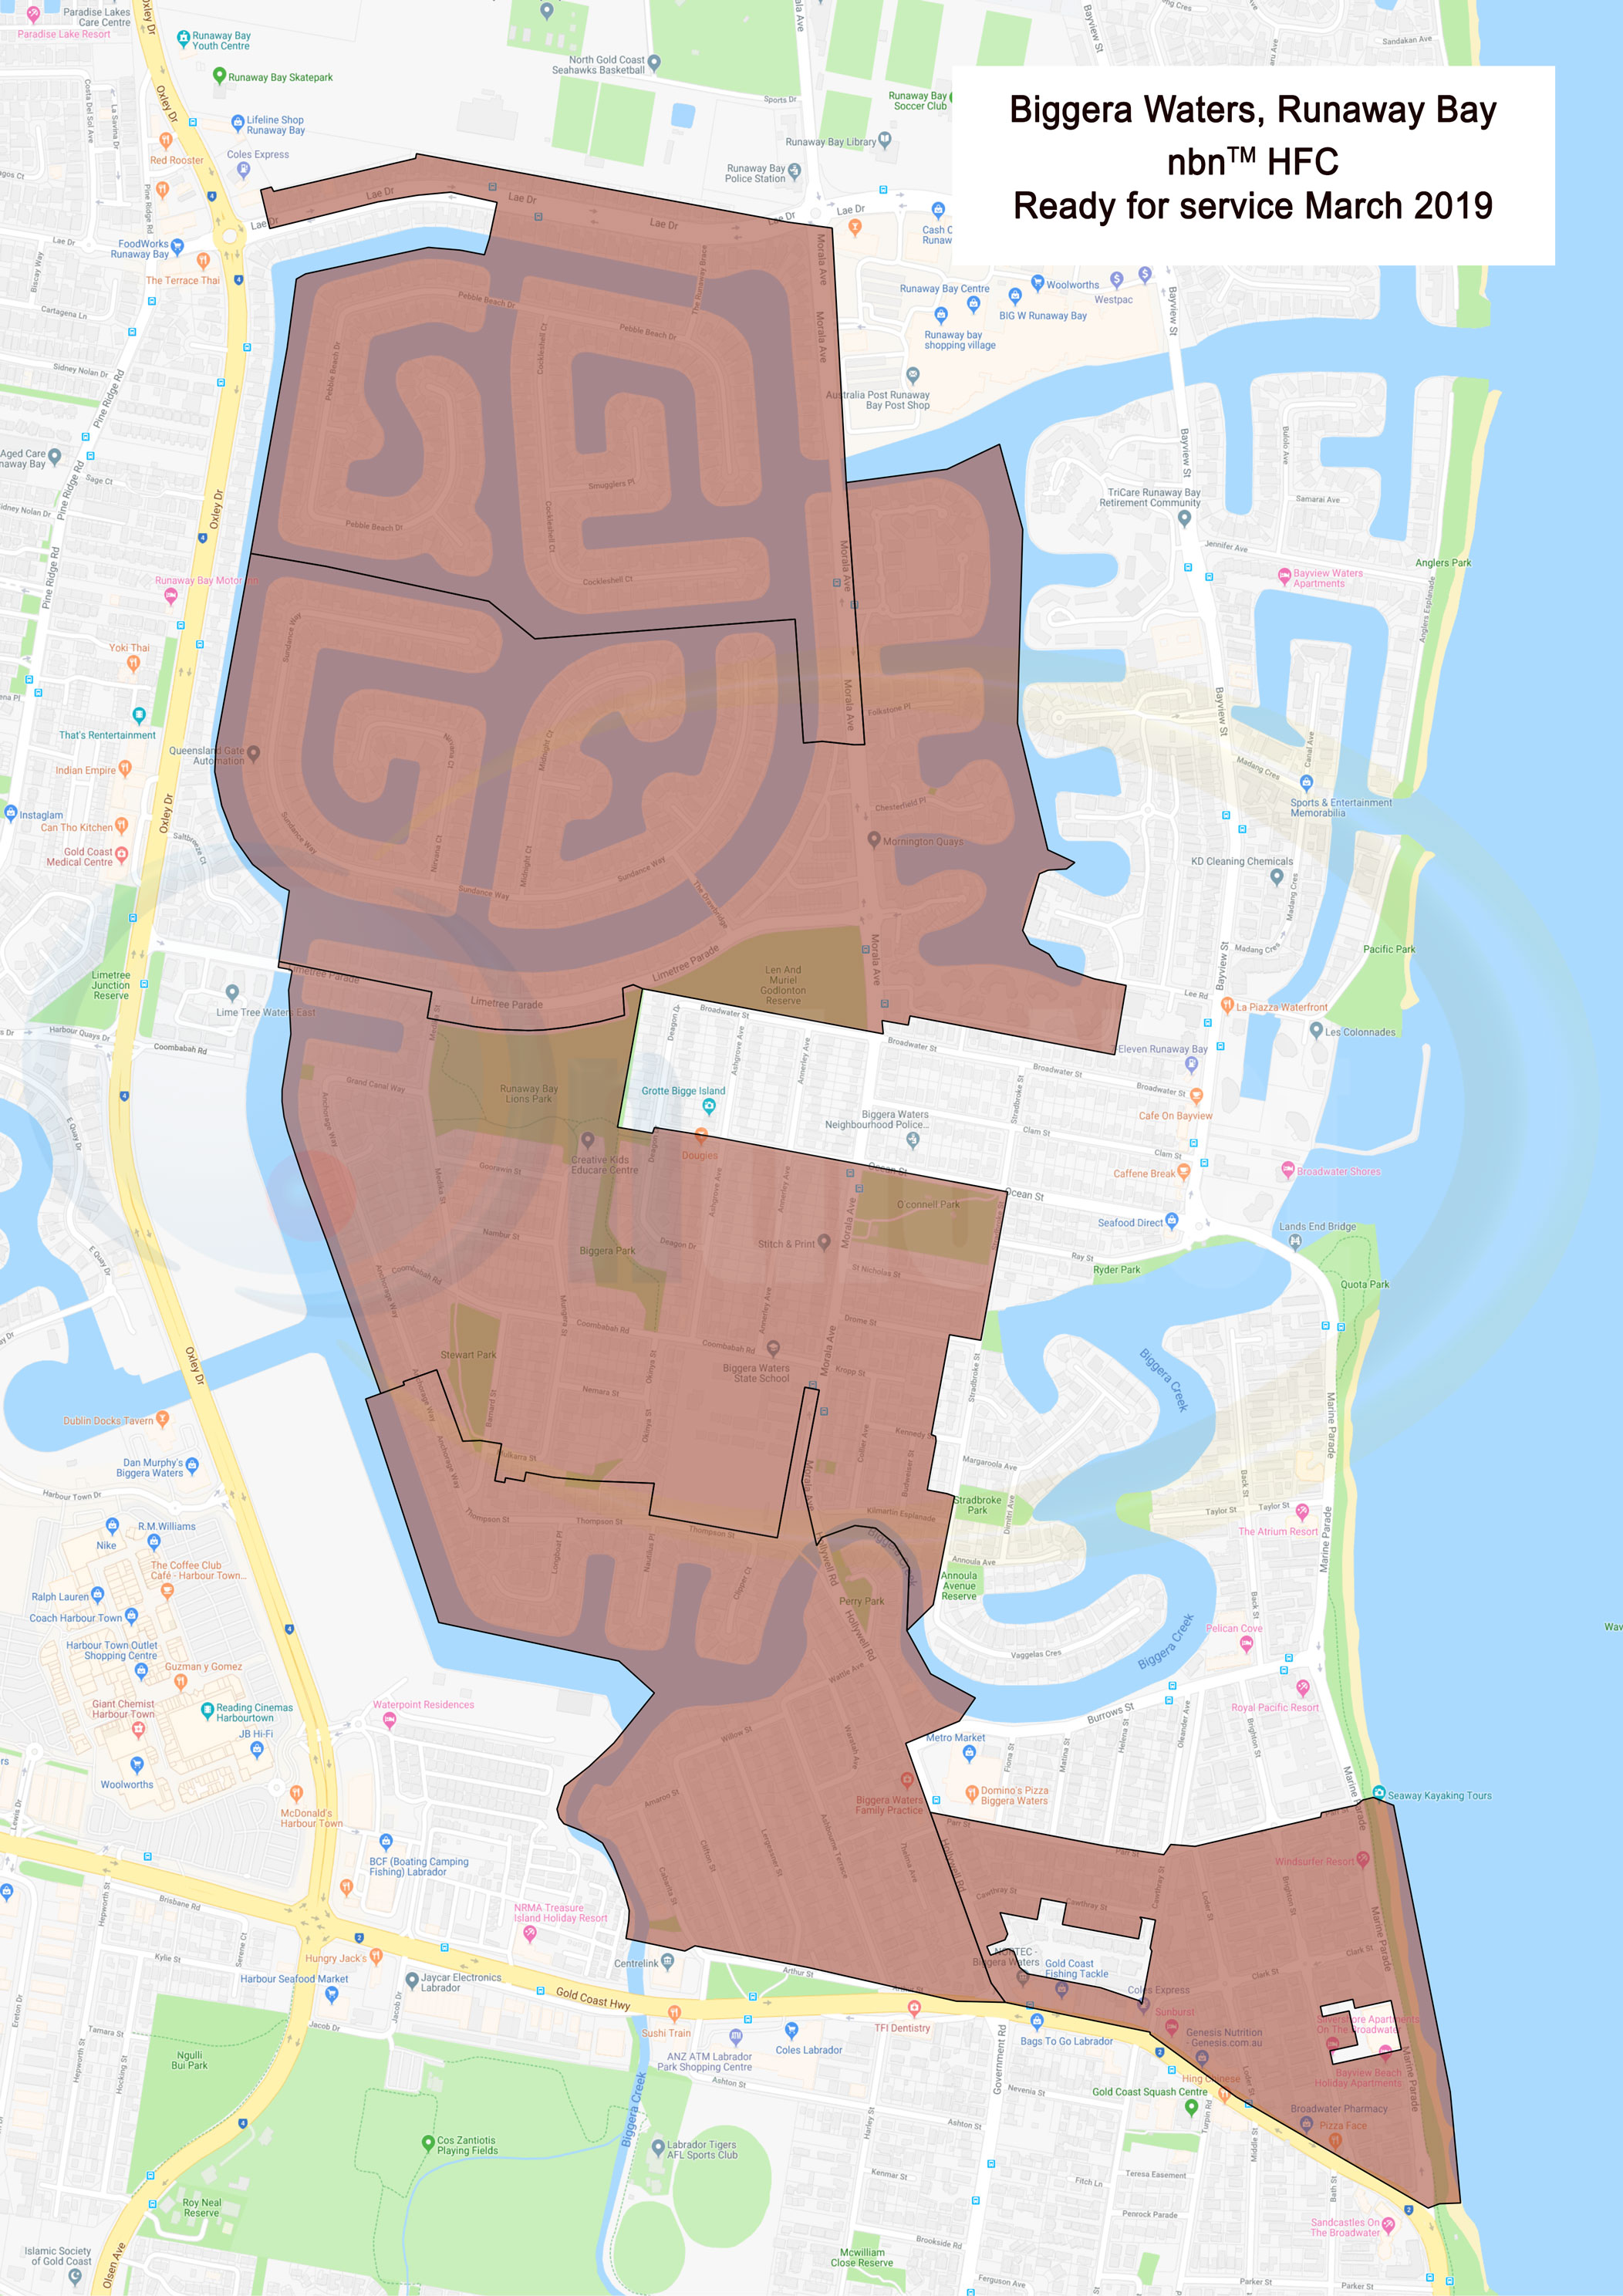 Gold Coast NBN Rollout News & Maps - OntheNet